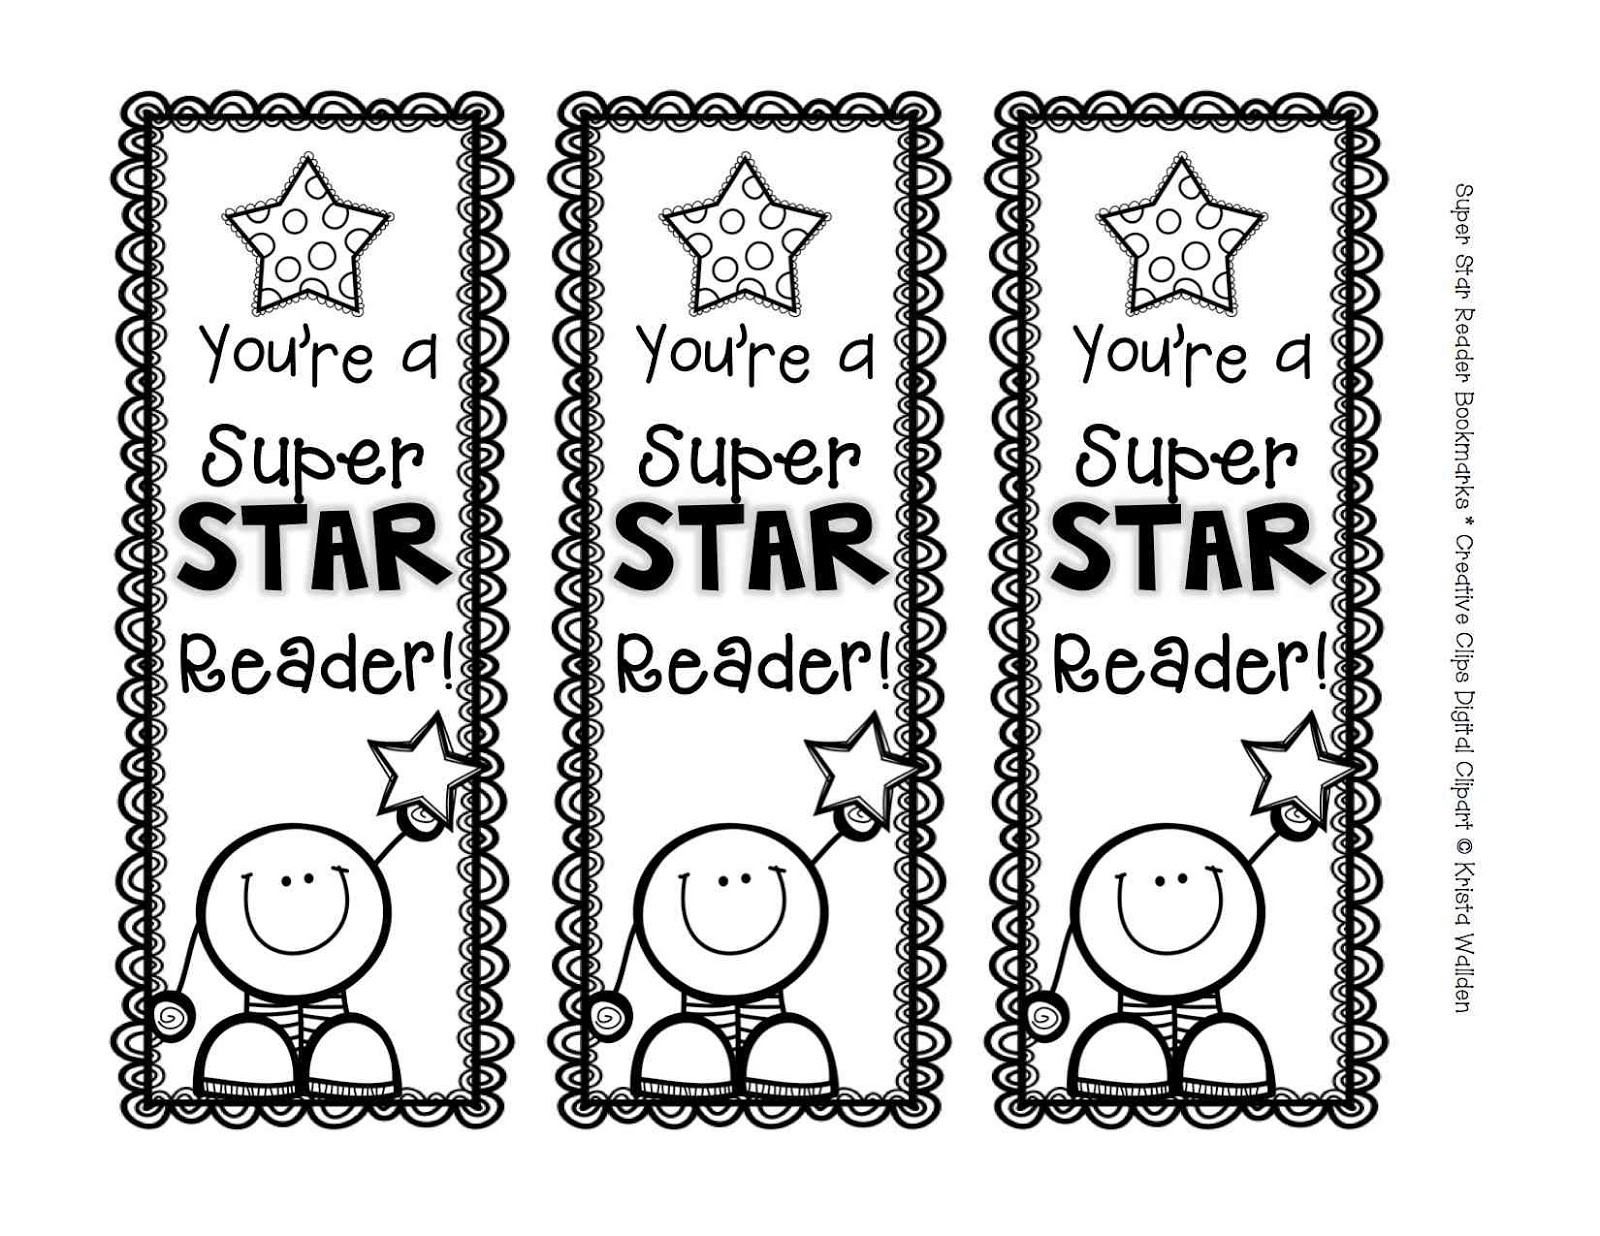 Free Printable Bookmark Templates To Color - Google Search regarding Cool Bookmarks To Print Black And White 29582